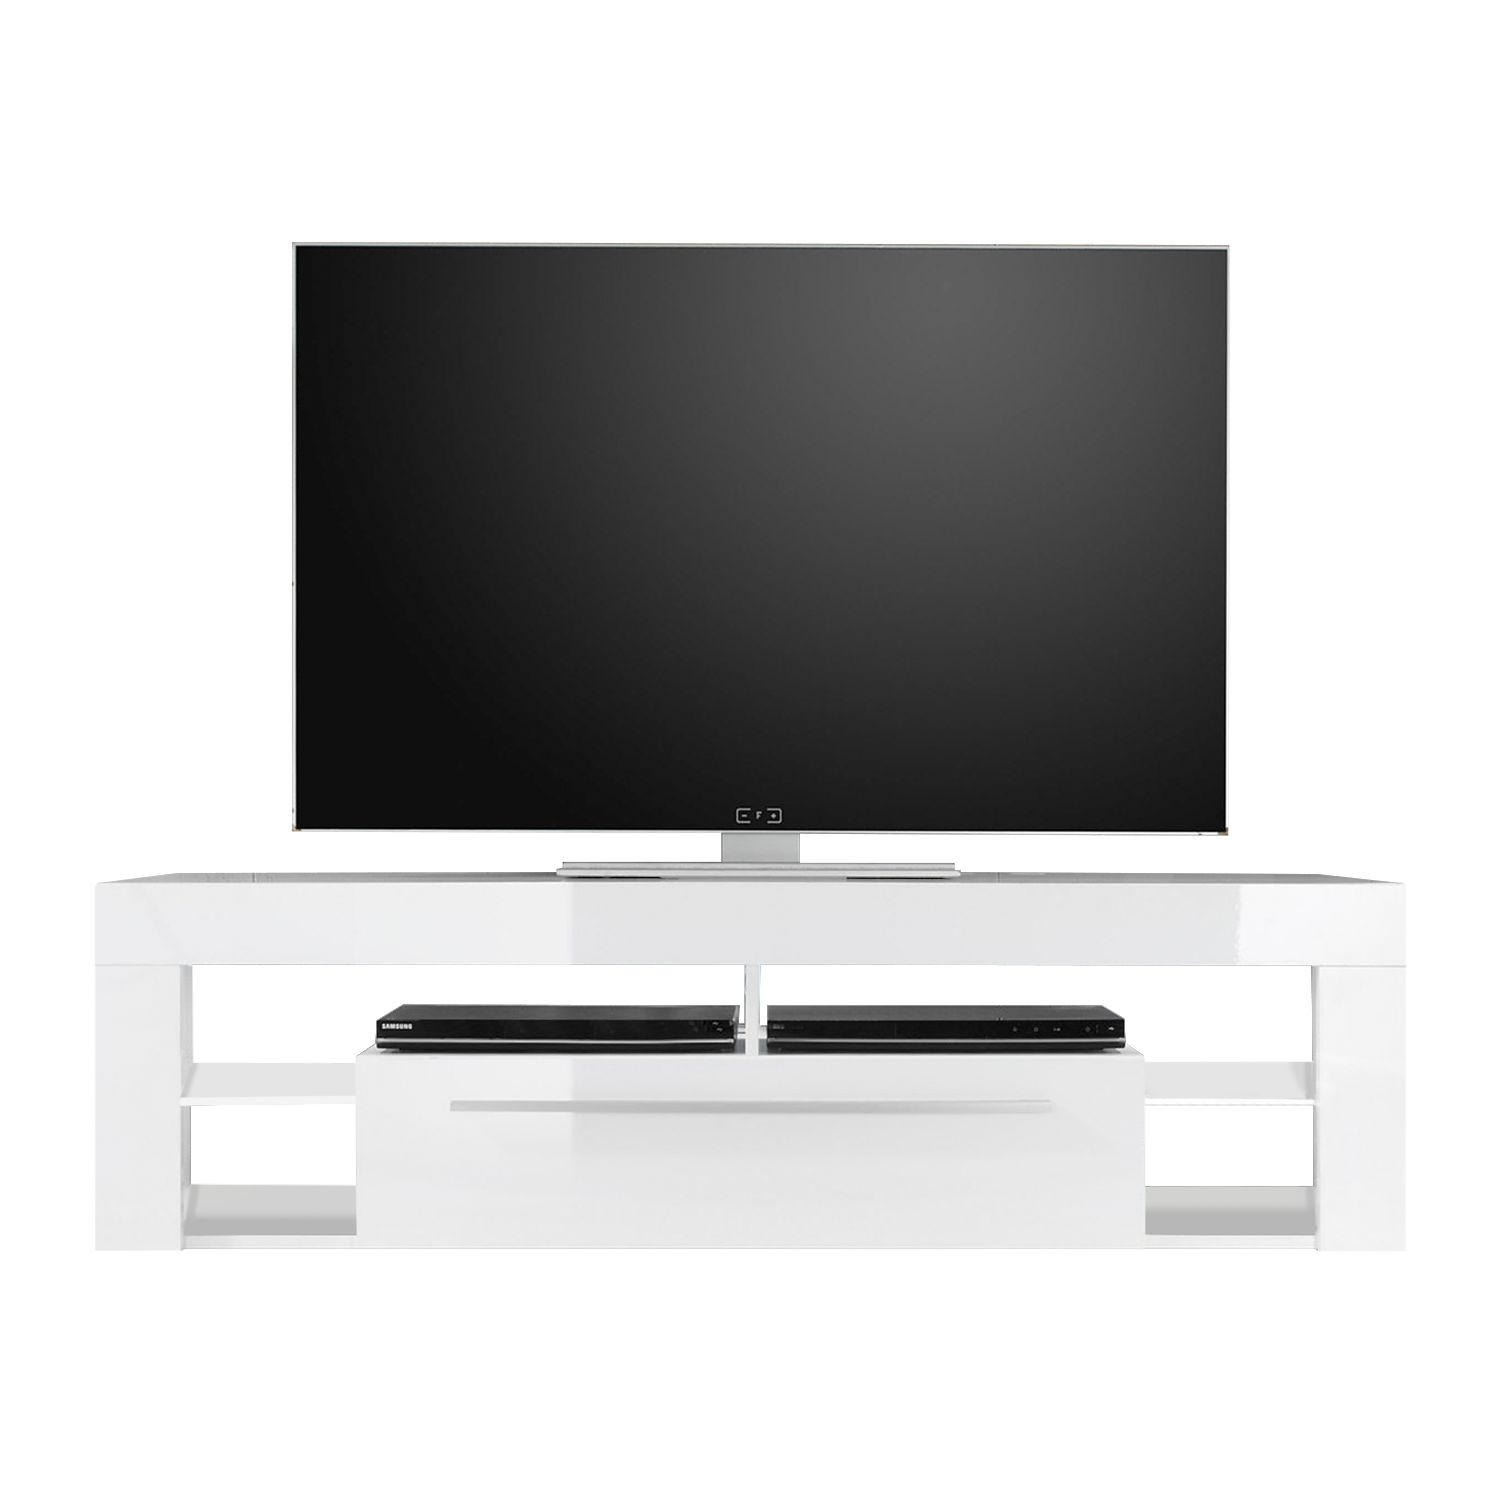 Meuble TV Paxton I - Blanc brillant, Trendteam